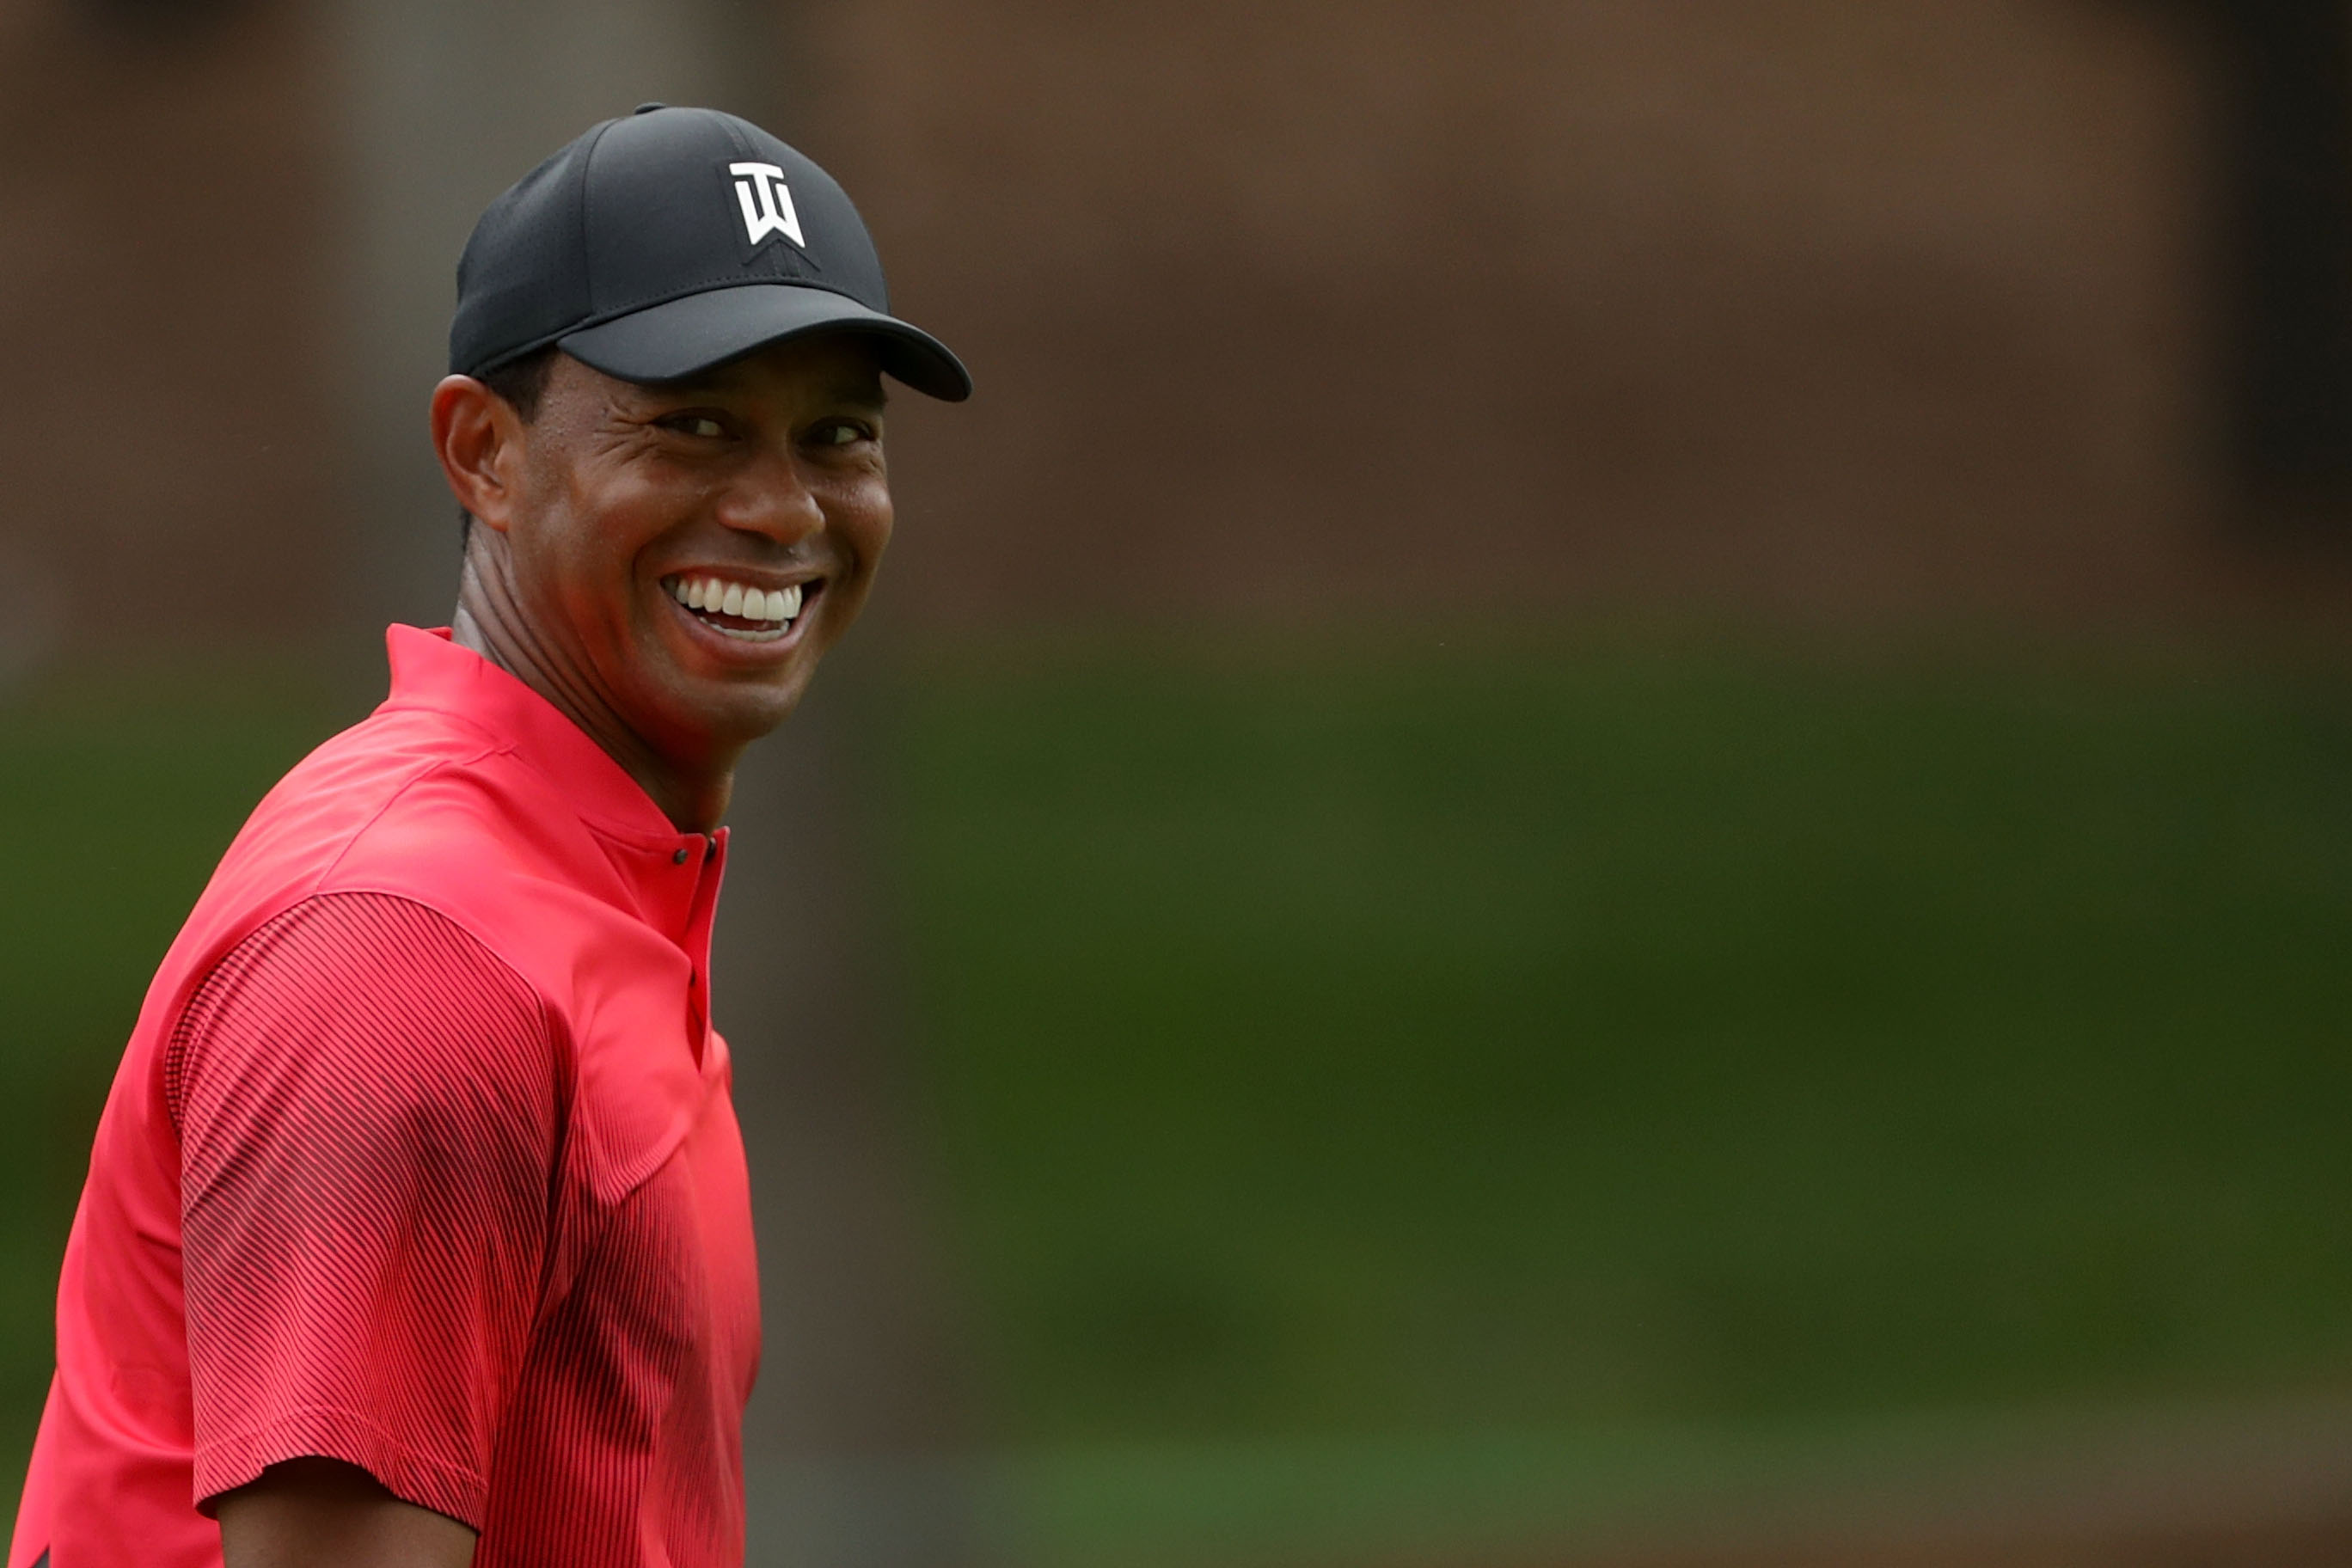 Players Championship 2018: Tiger Woods reveals why he's disappointed after first round